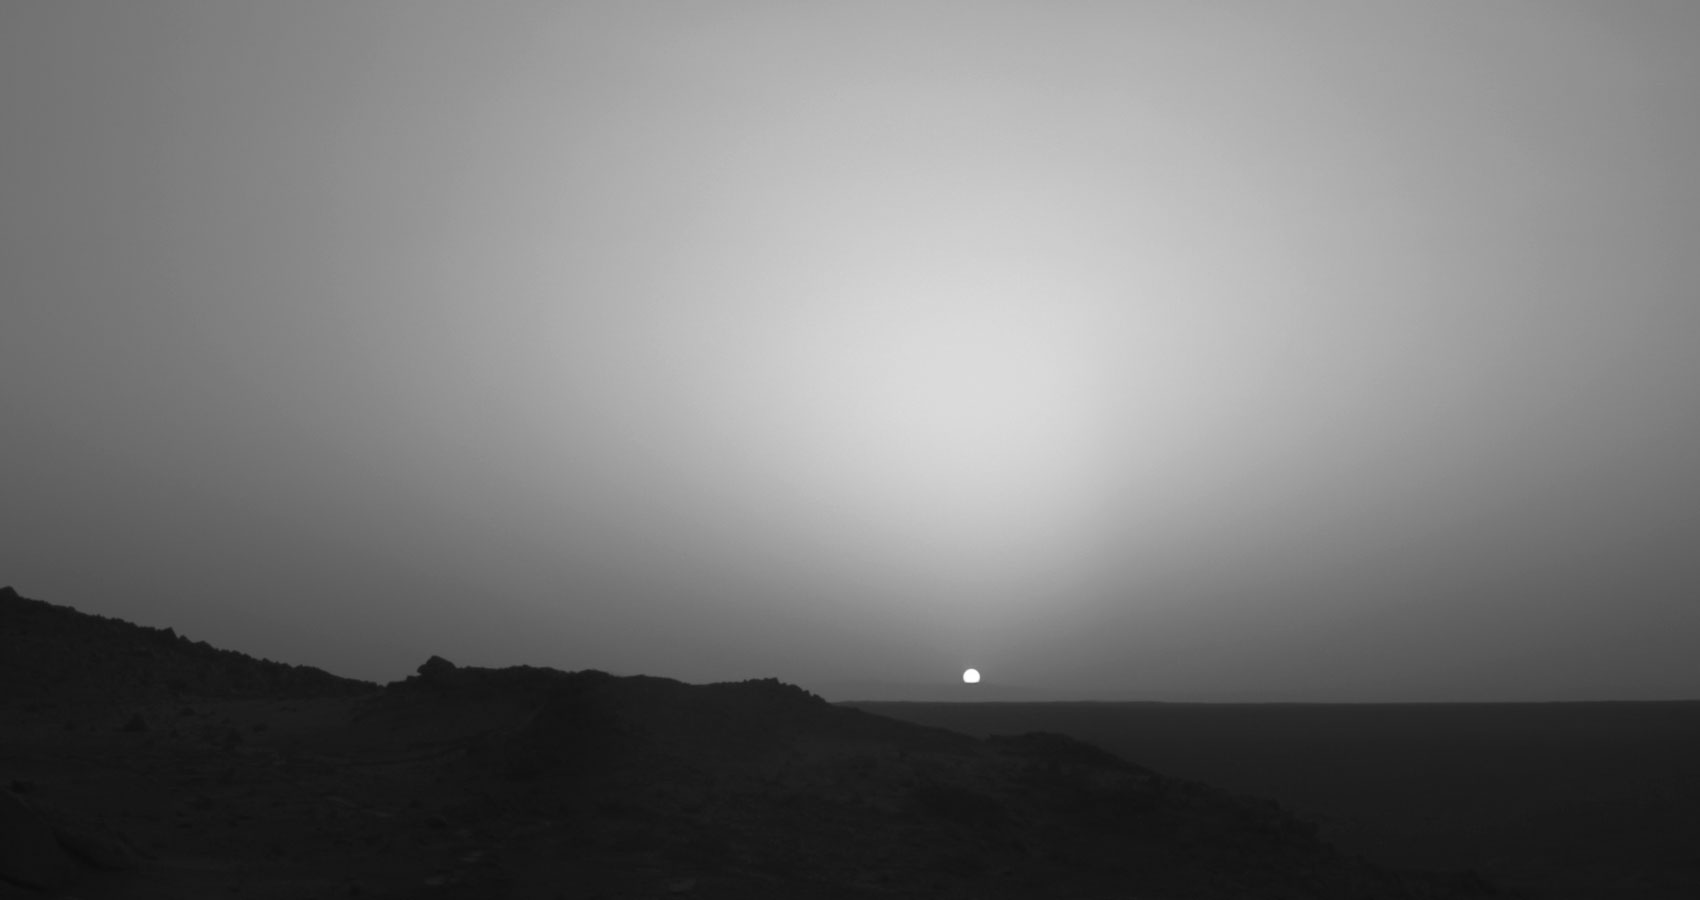 Sunsets on Mars, prose written by Doug Stanfield at Spillwords.com